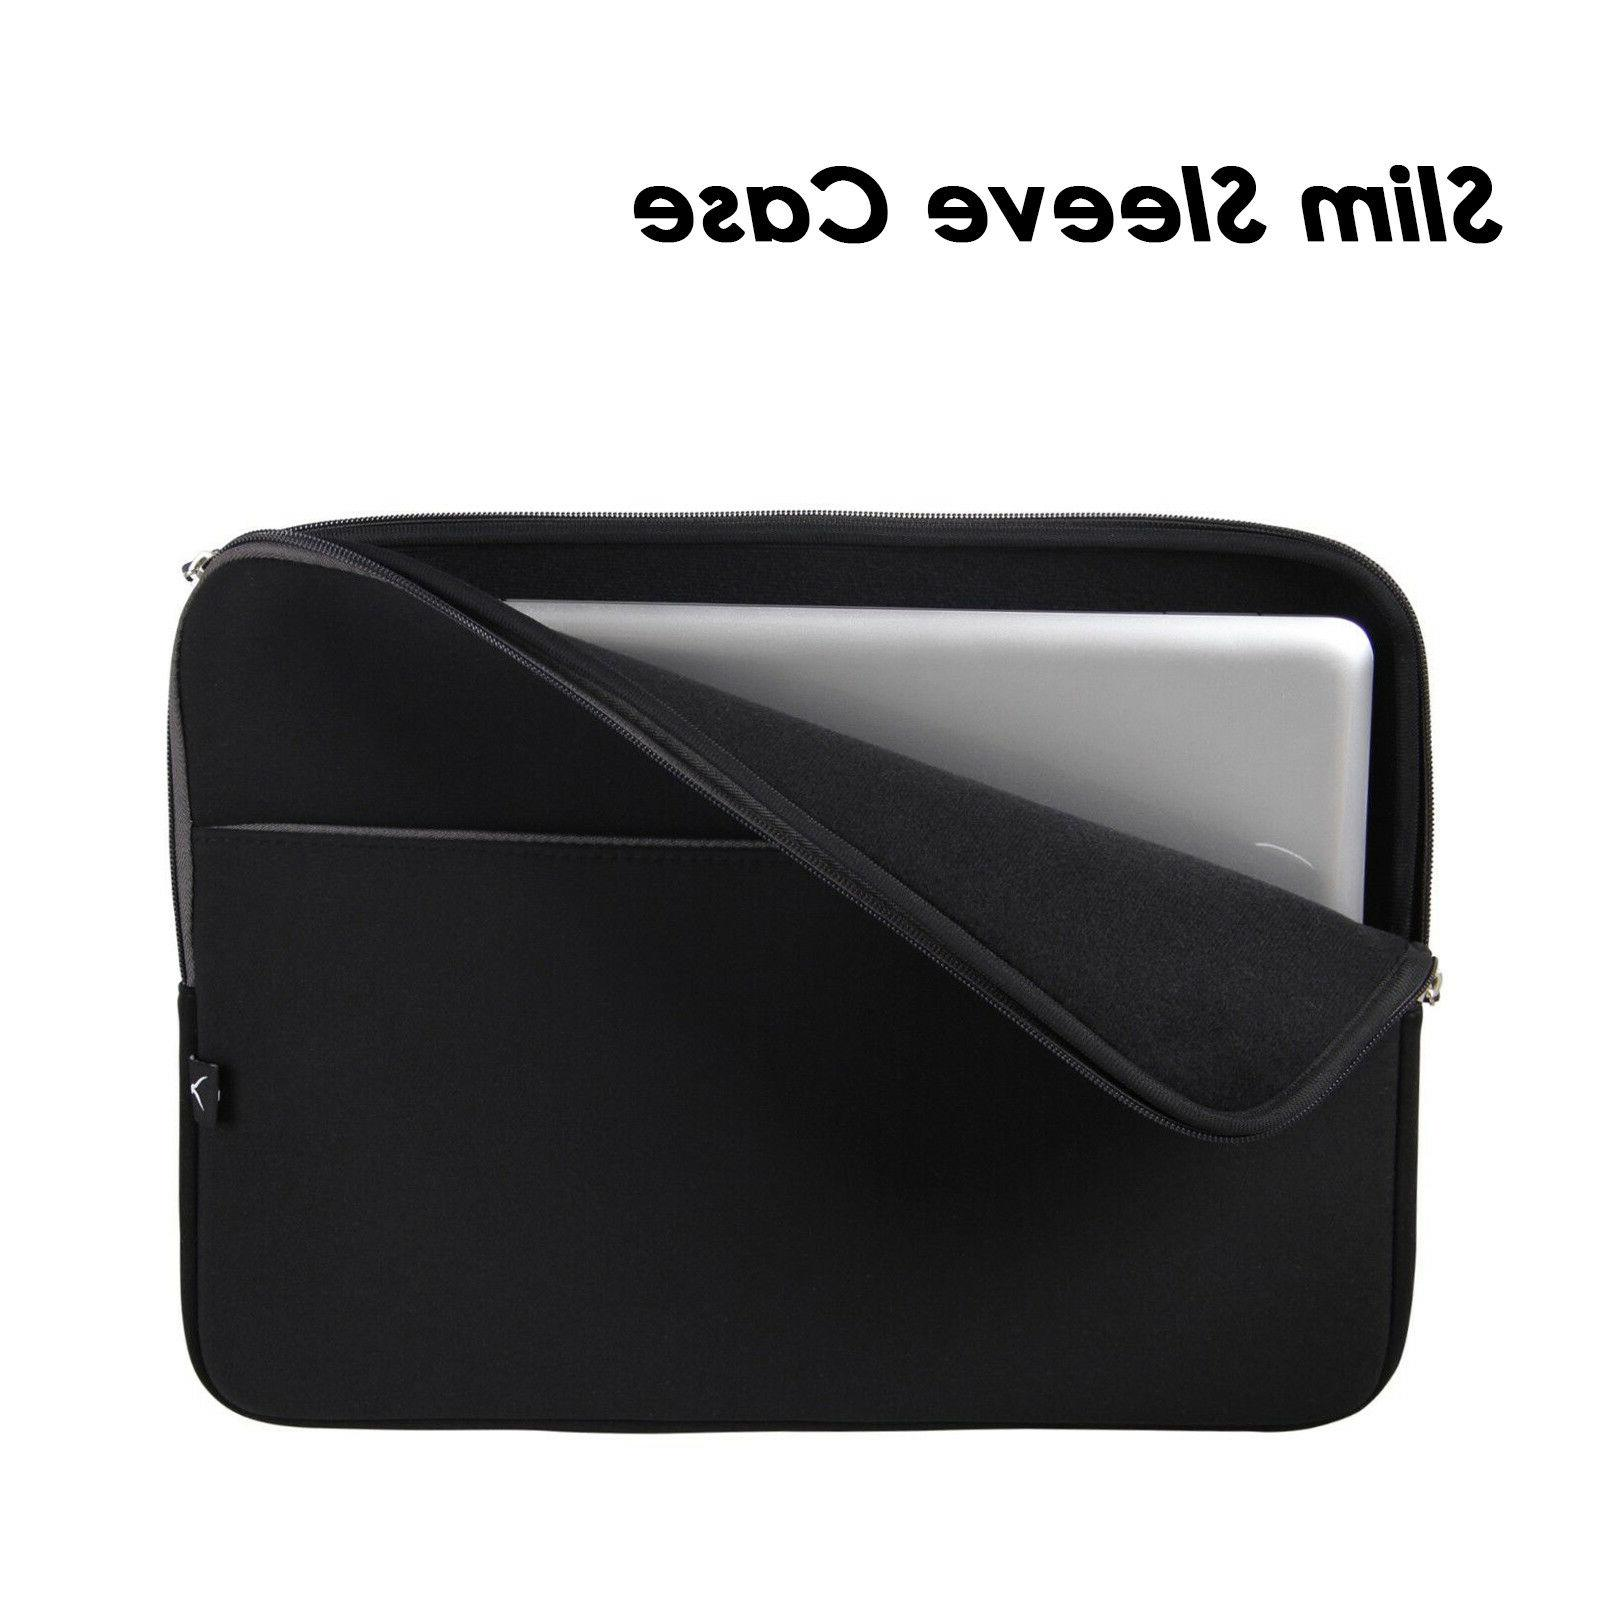 15 soft laptop sleeve case bag cover